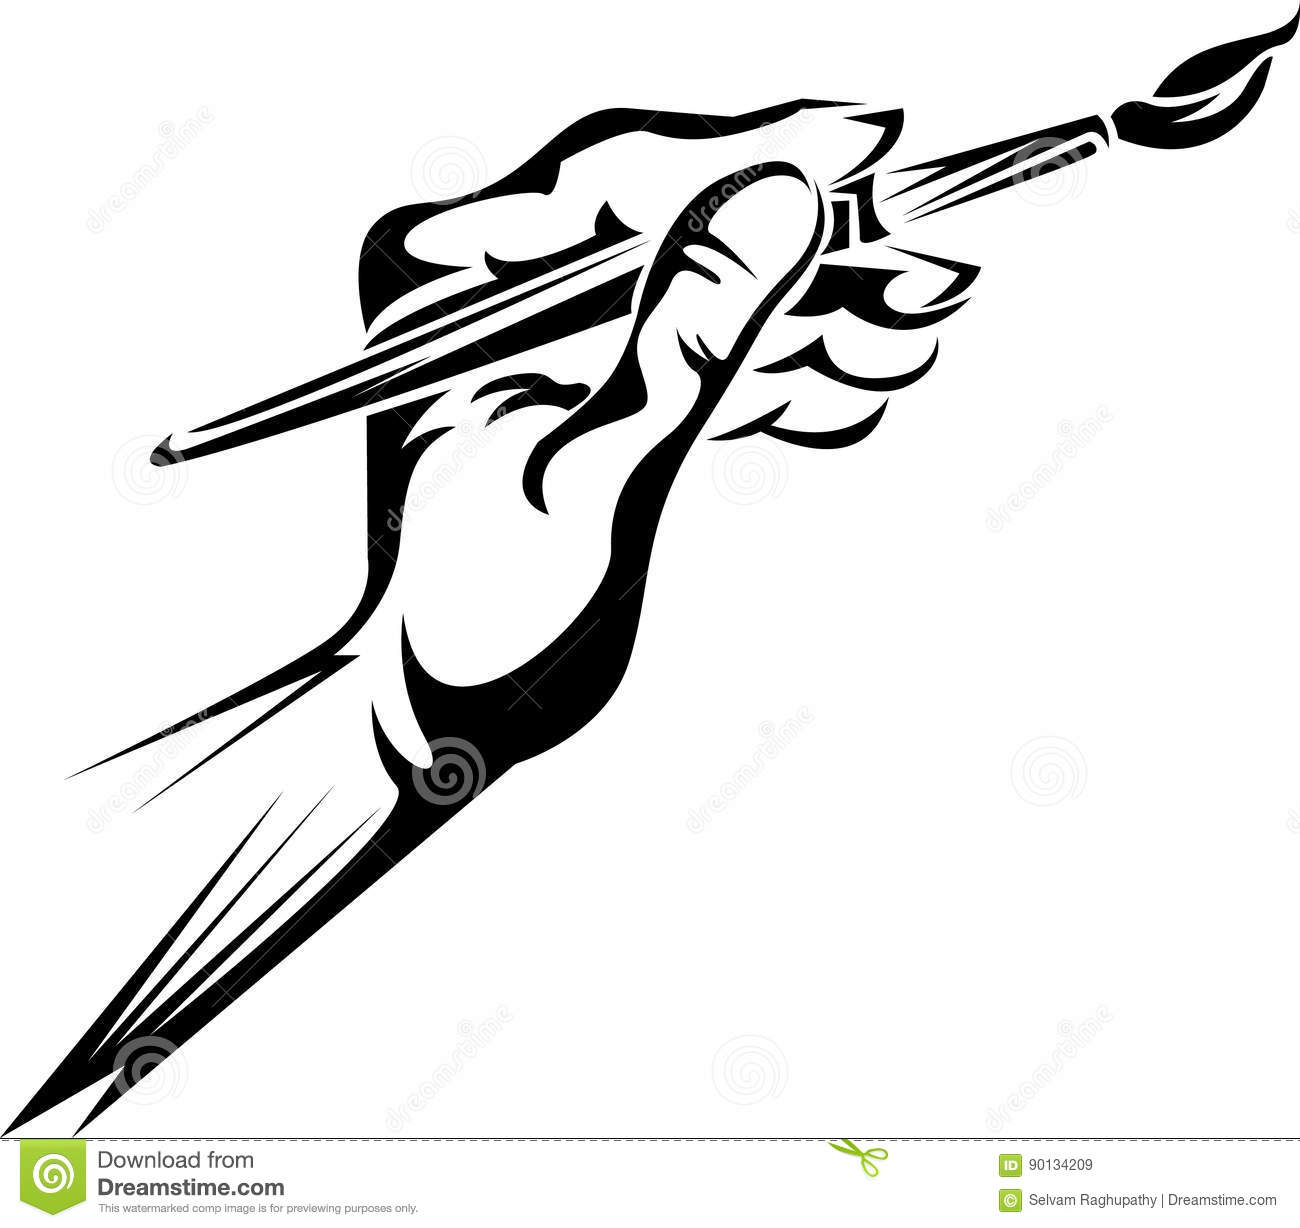 Hand holding a paint brush stock vector. Illustration of.